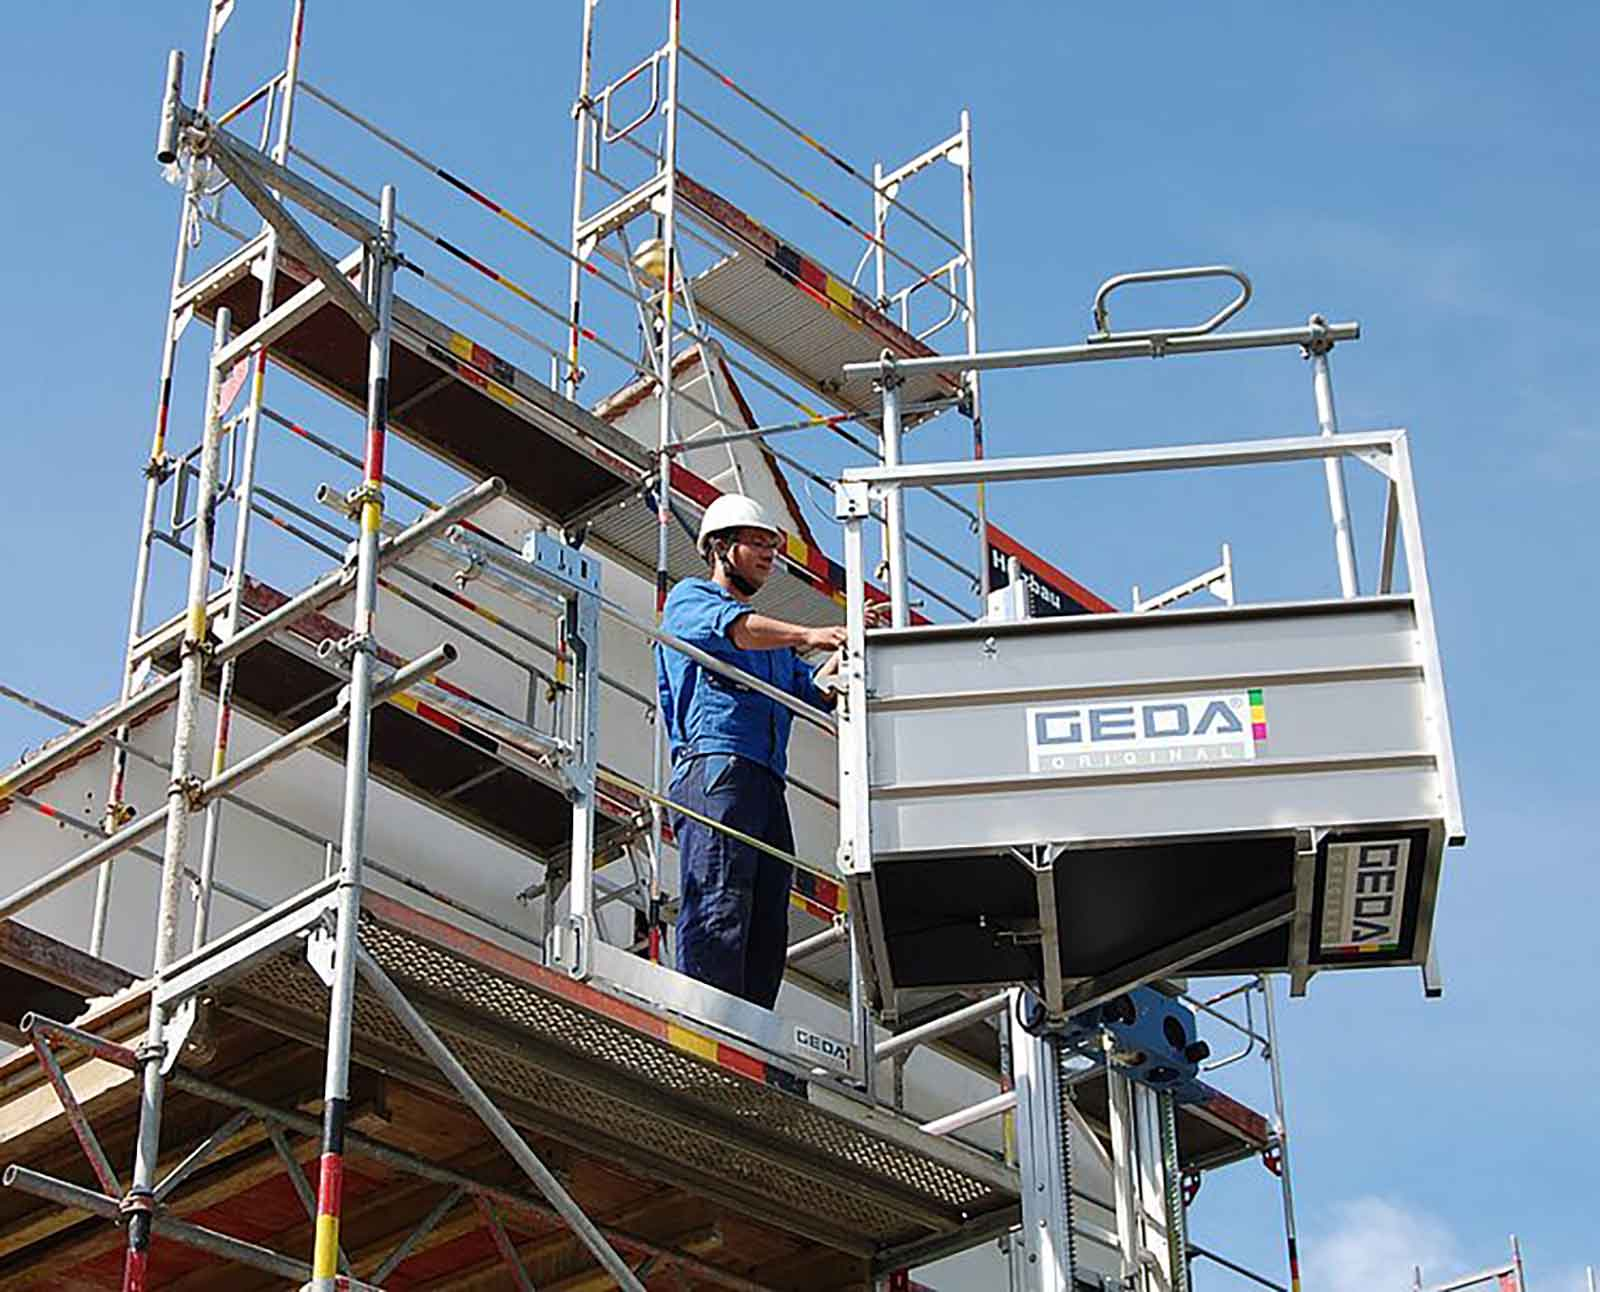 Scaffold lift rotates allowing safe transfer of scaffolding